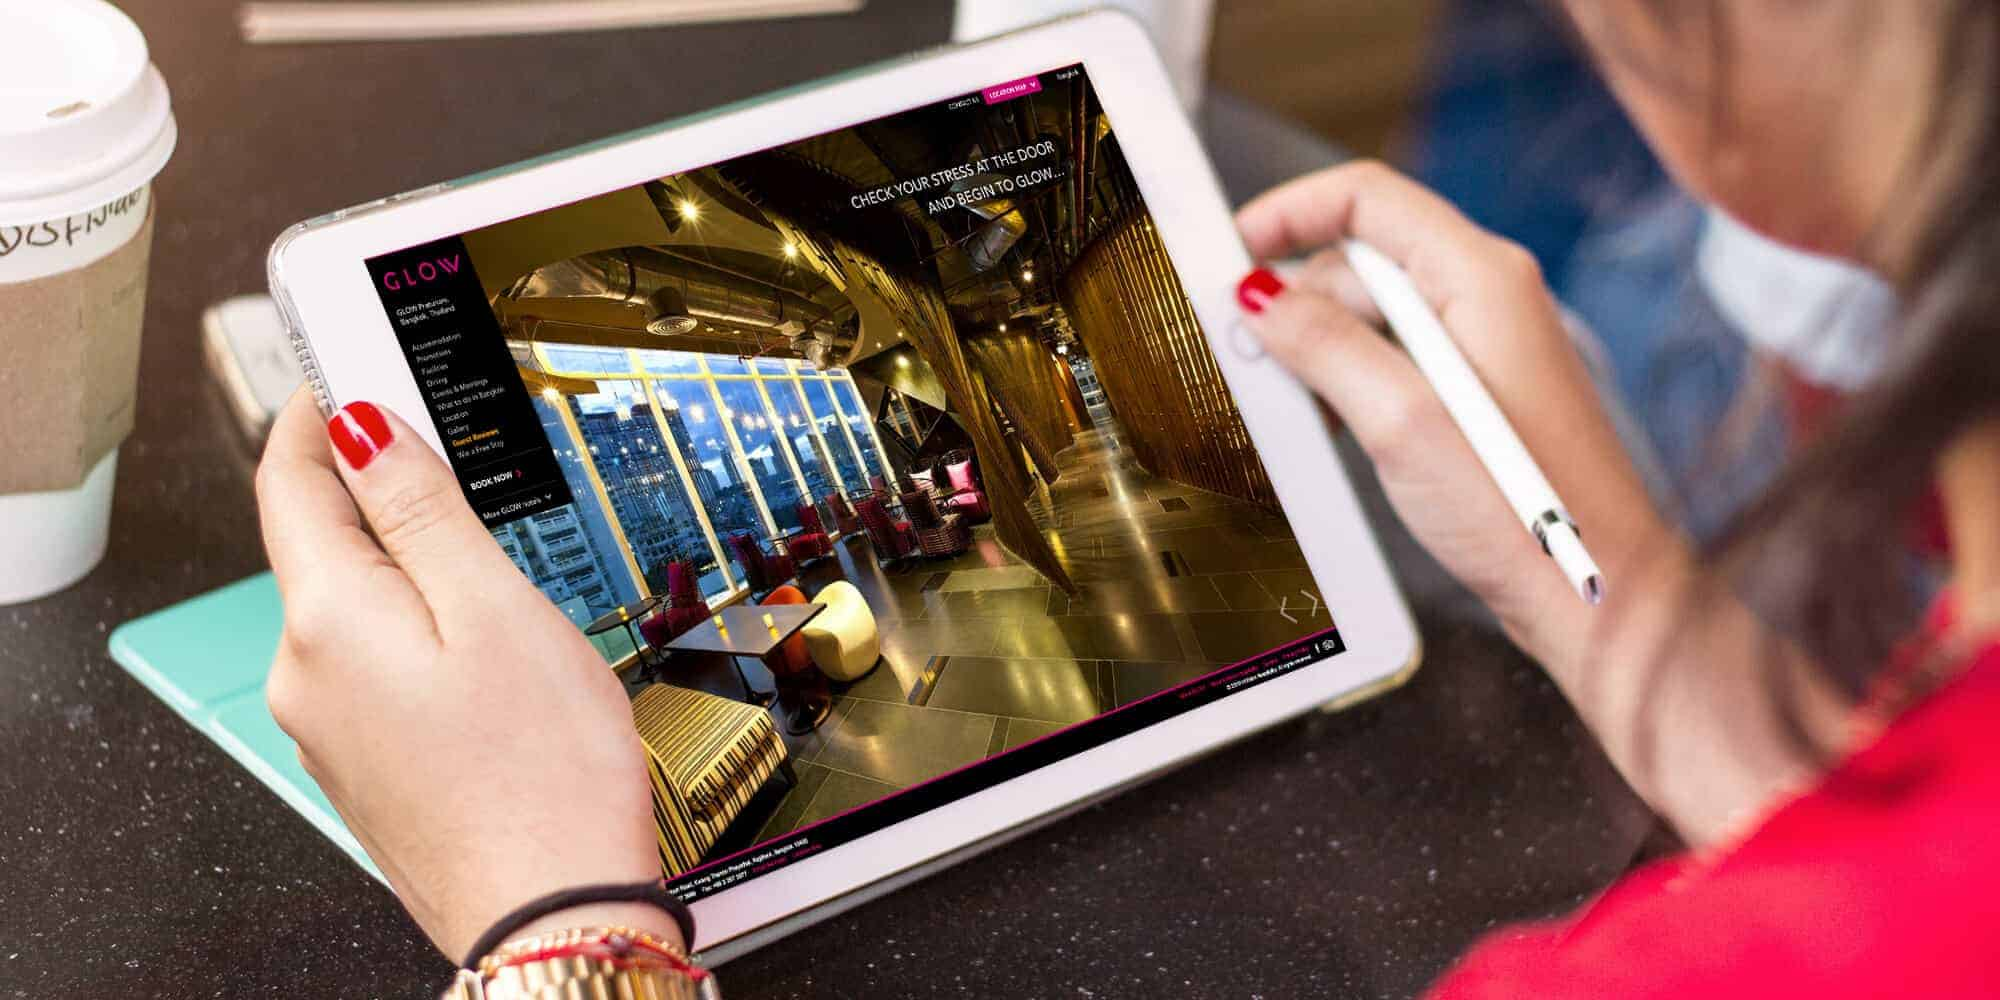 glow-hotels-web-design-ipad